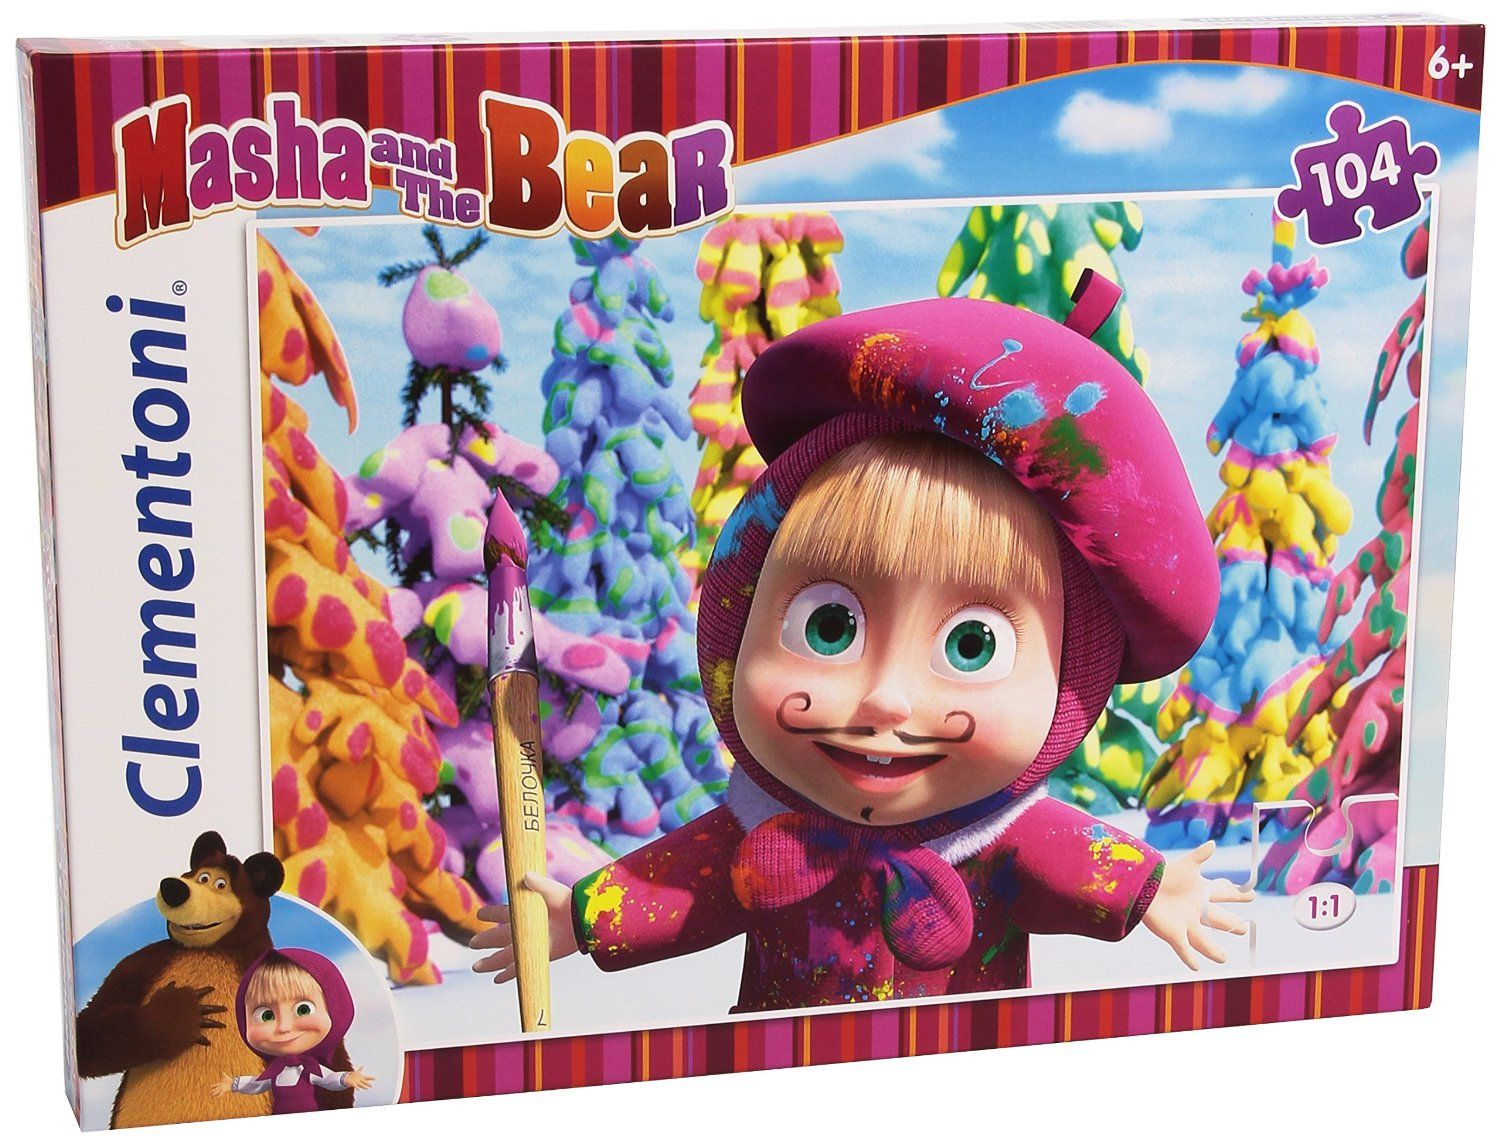 Clementoni 27934 - Masha and The Bear 104 Parça Puzzle